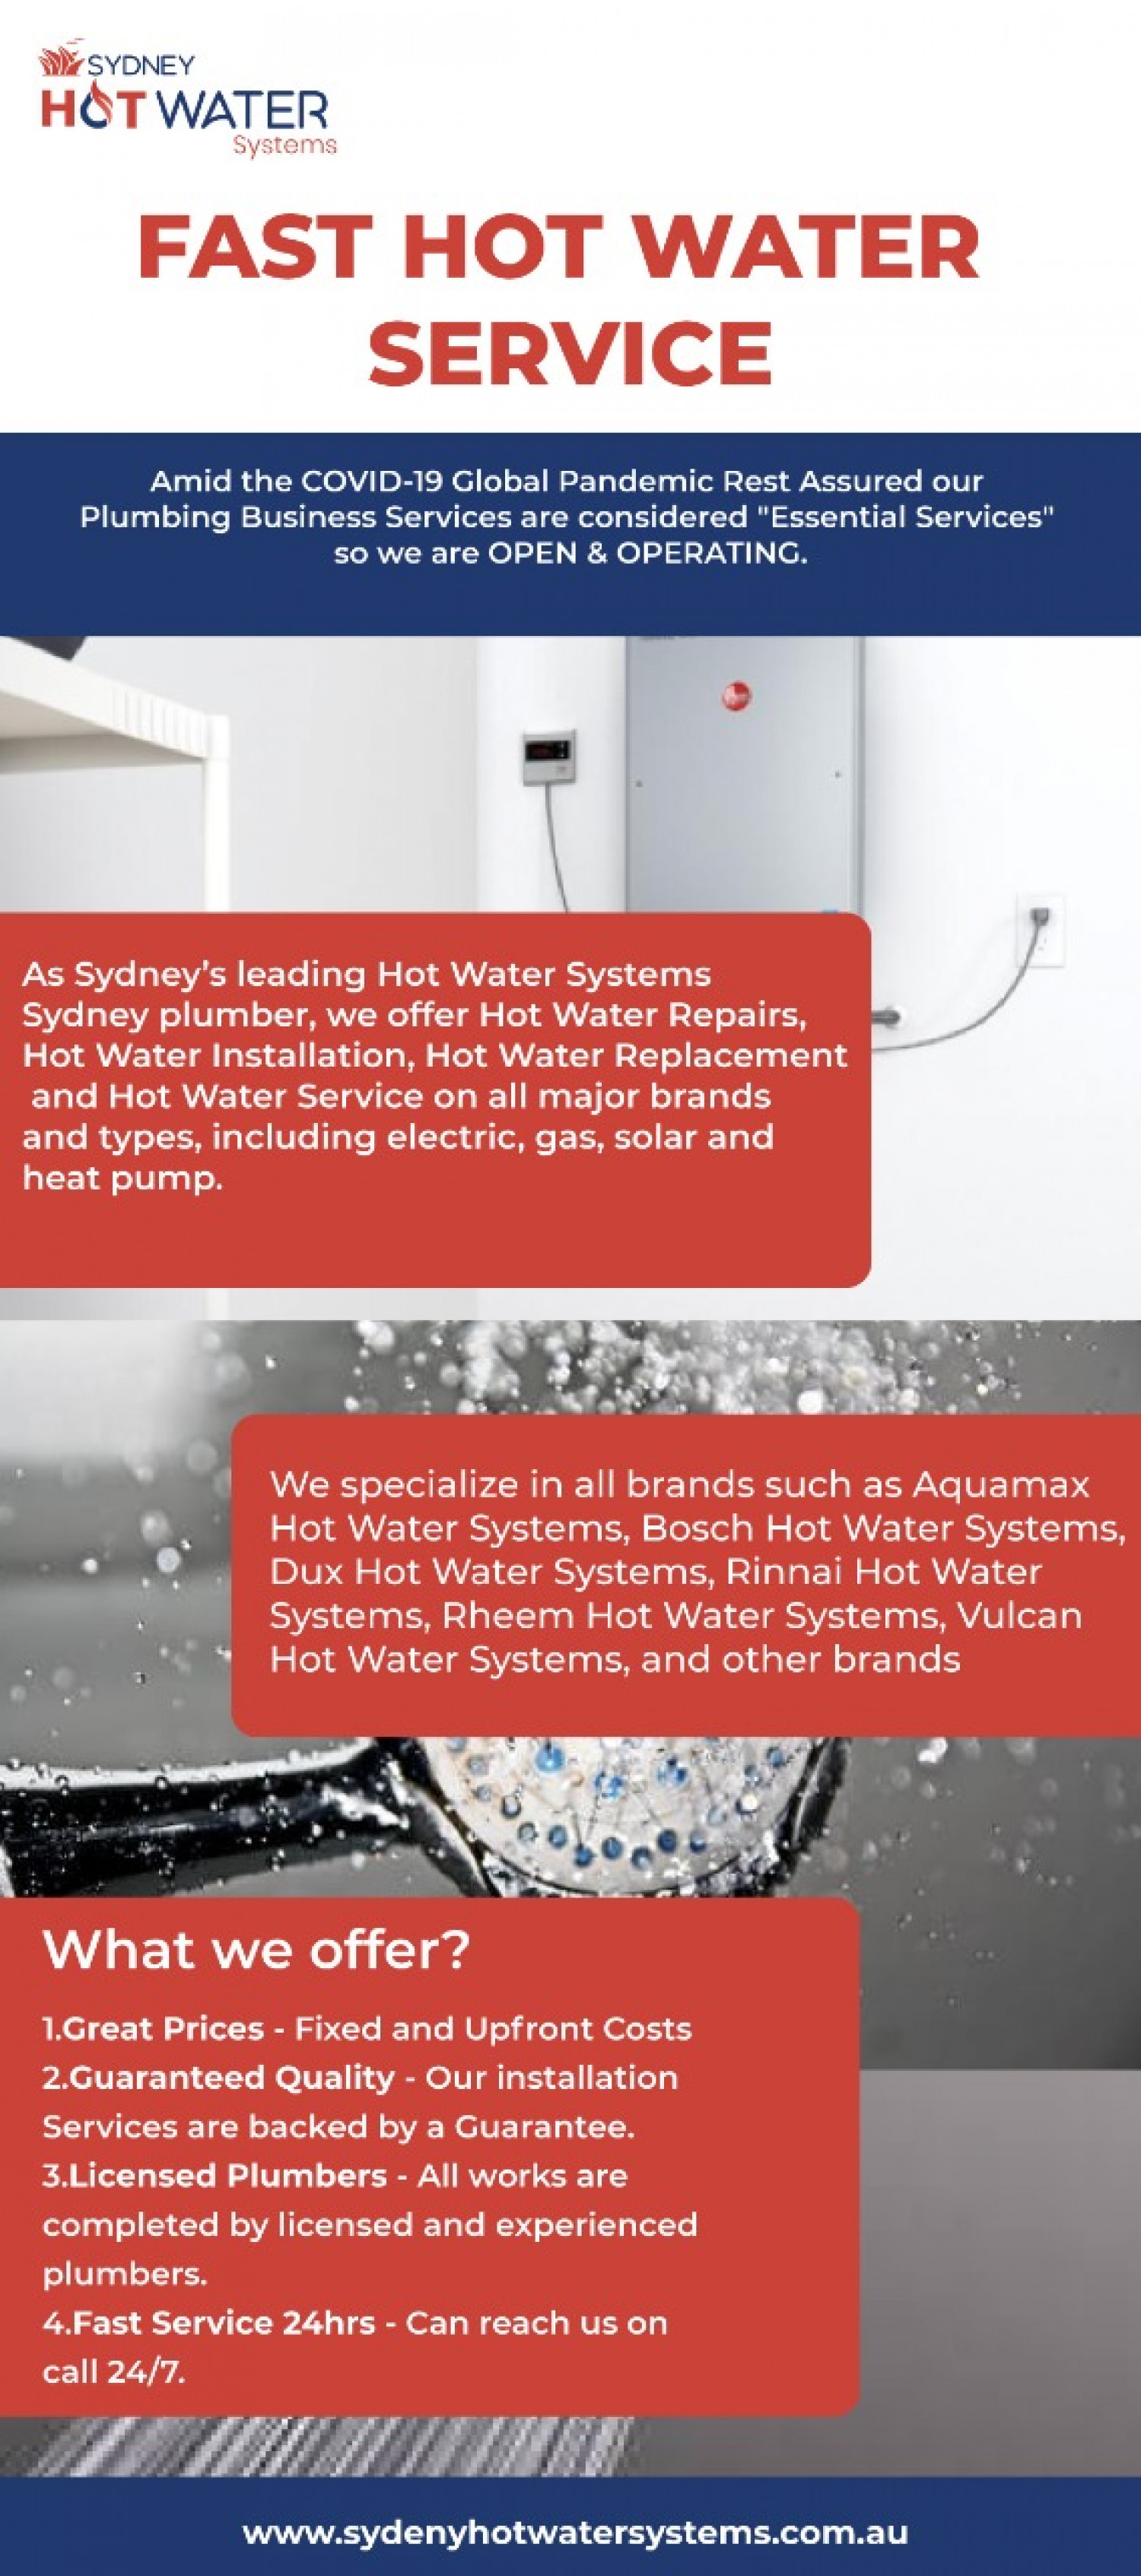 Sydney Heating Systems - Gas Hot Water Service Infographic